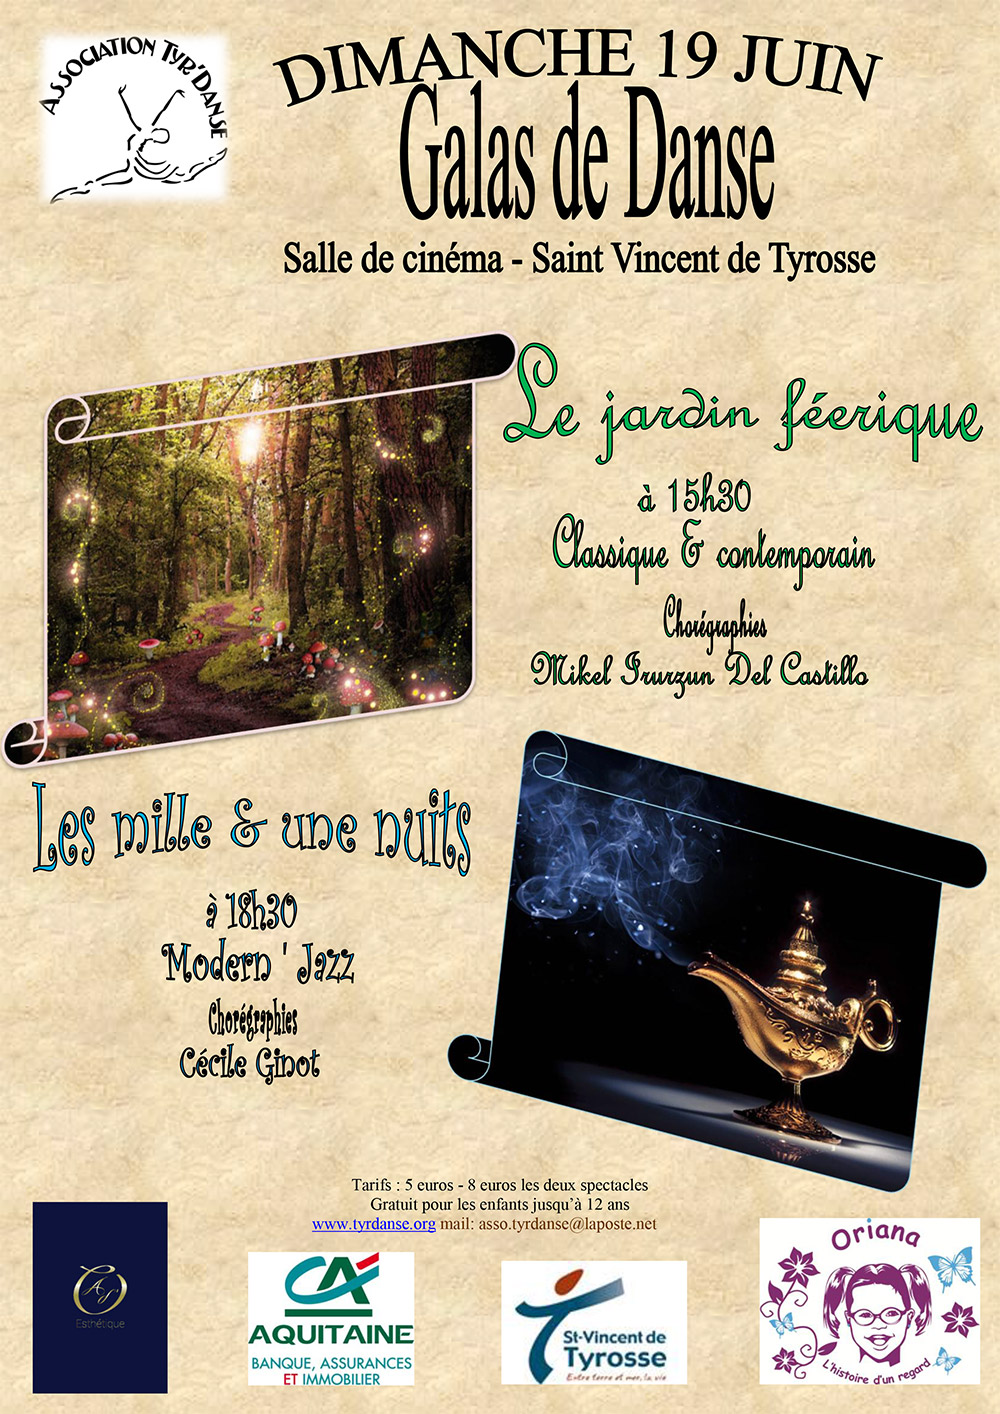 Tyr-danse-spectacle-19-06-2016